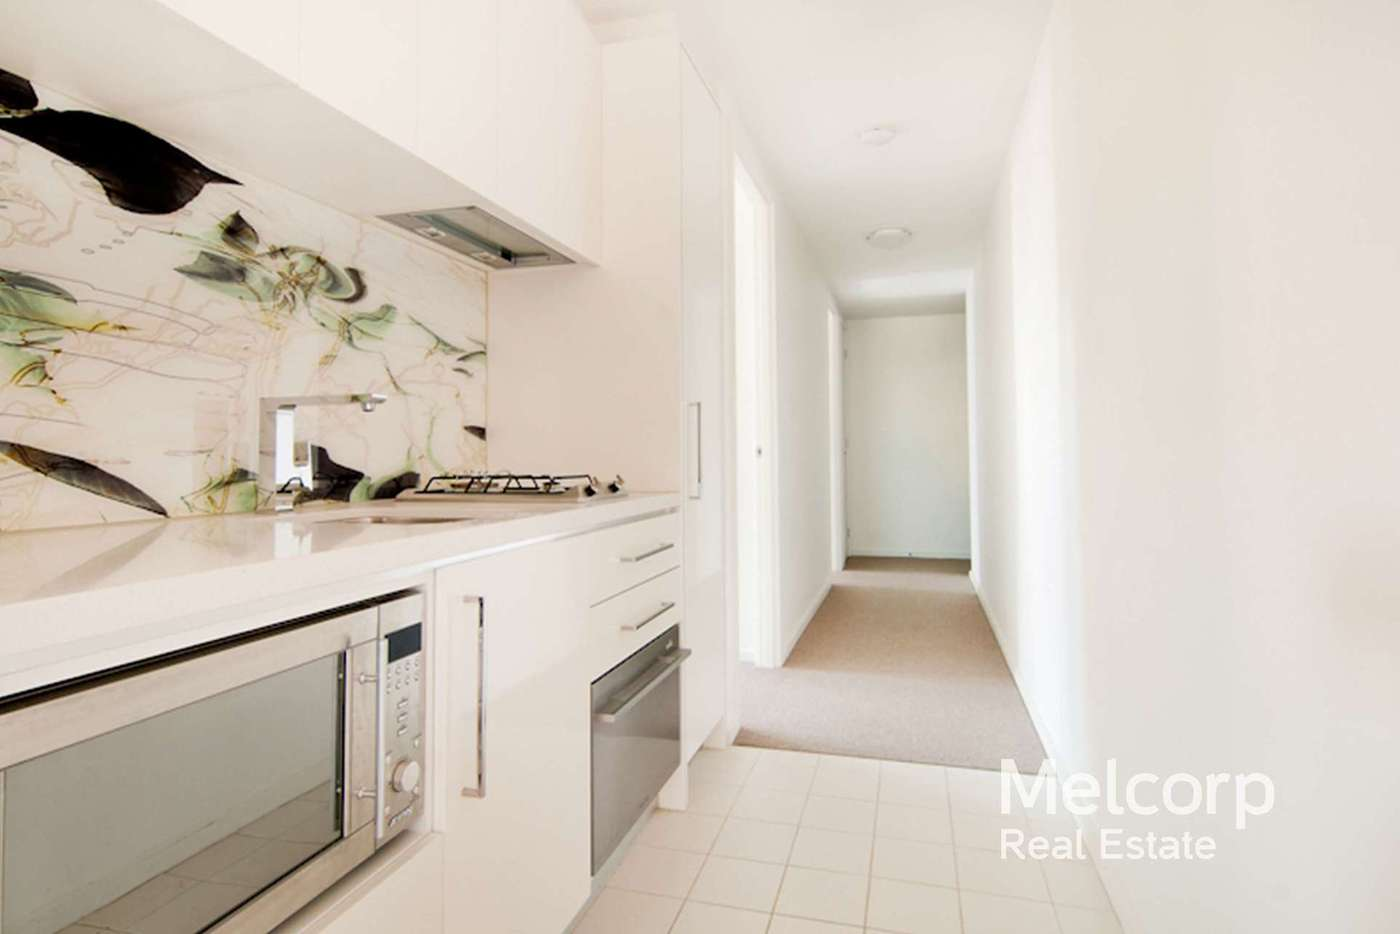 Main view of Homely apartment listing, 202/300 Young Street, Fitzroy VIC 3065